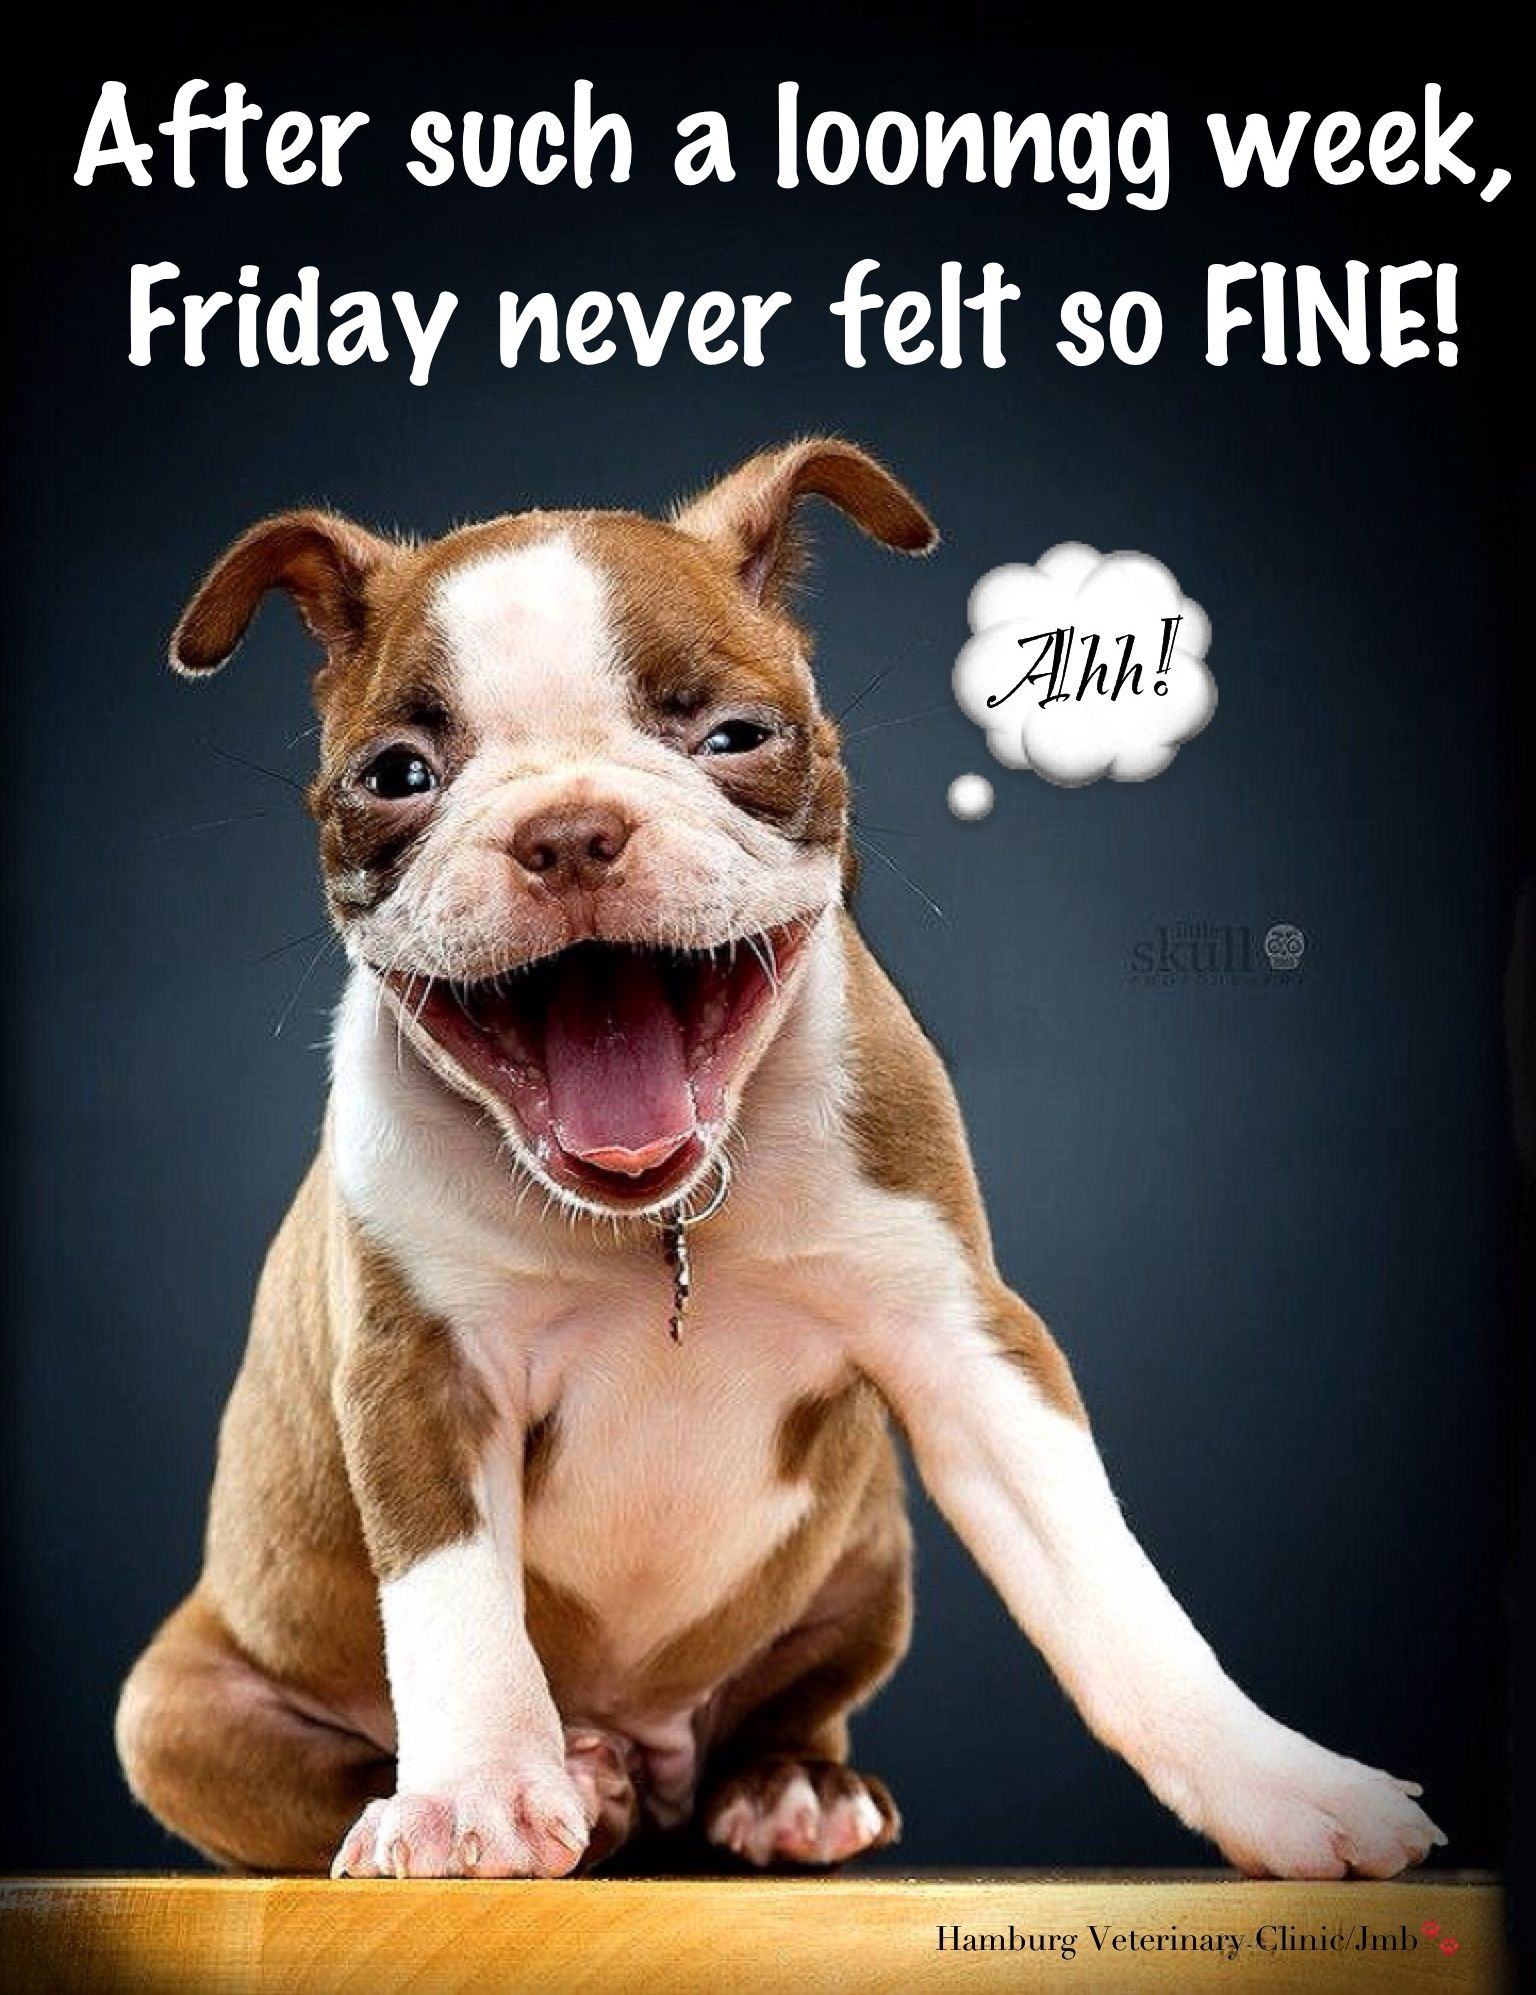 Friday Humor: Smile! Dog Funny  Long week! After such a